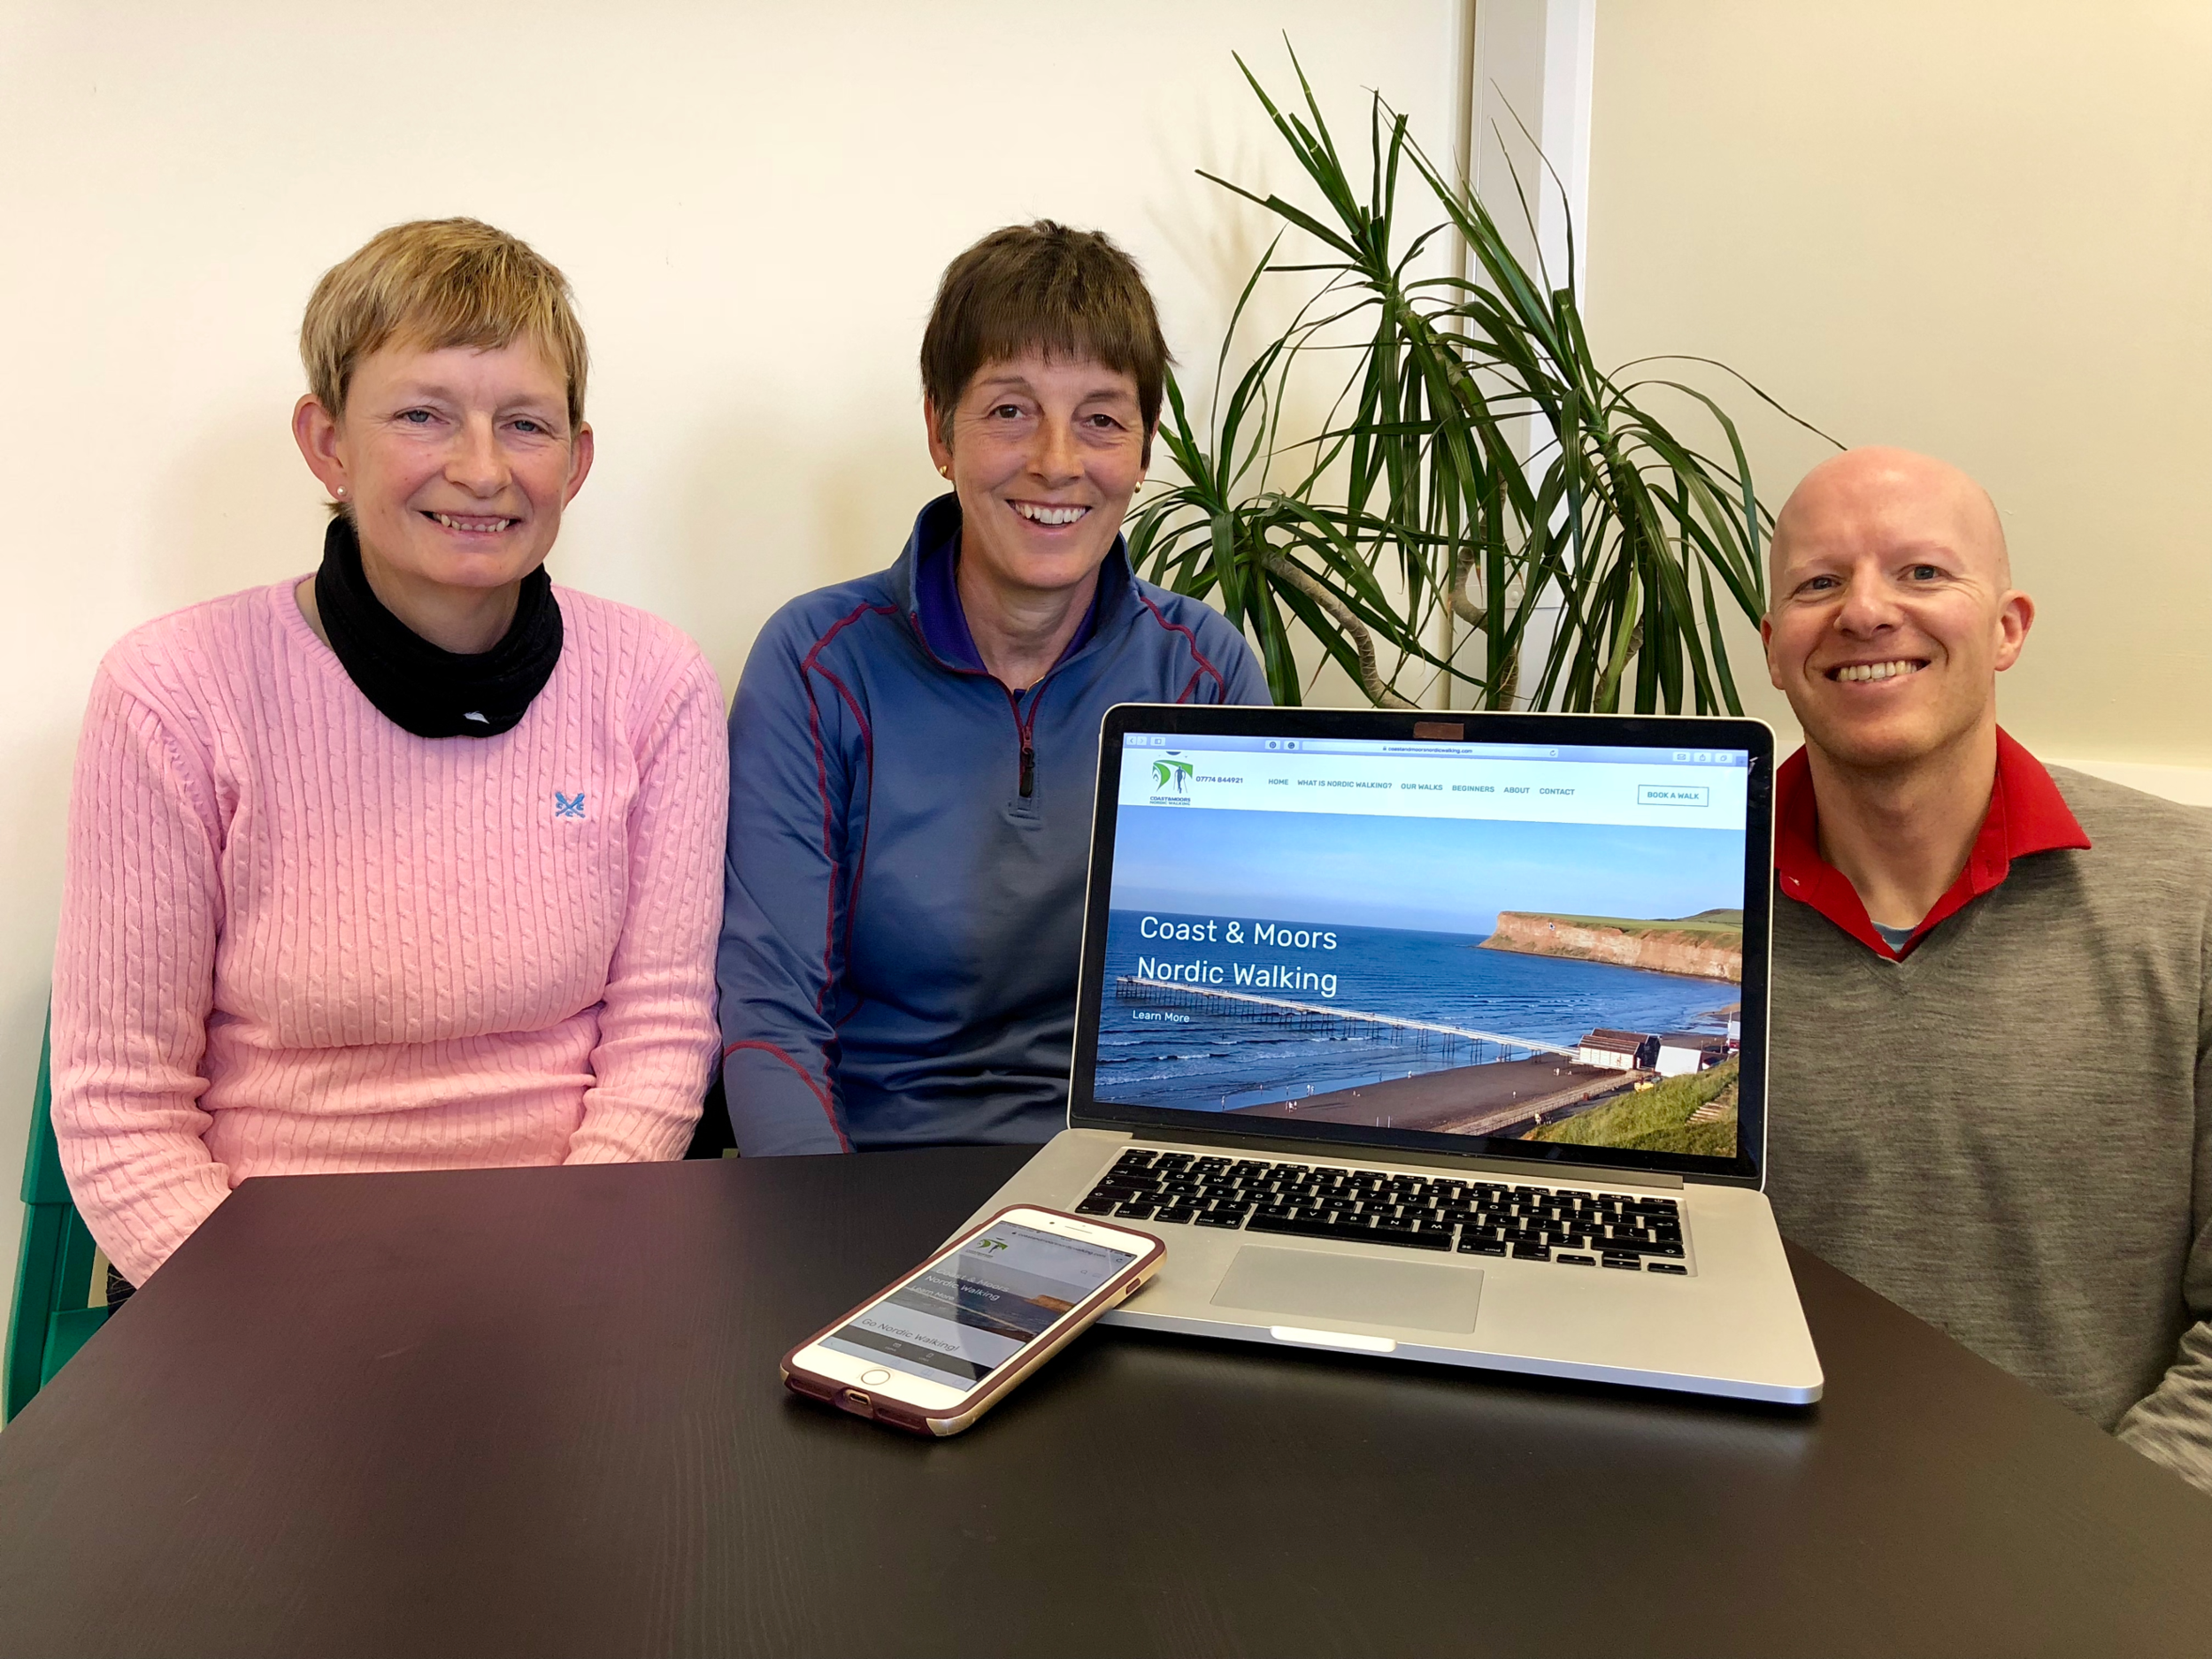 Pat Smillie (left) and Jo Davy (centre) from Coast and Moors Nordic Walking with Darren Winter from Duco Digital